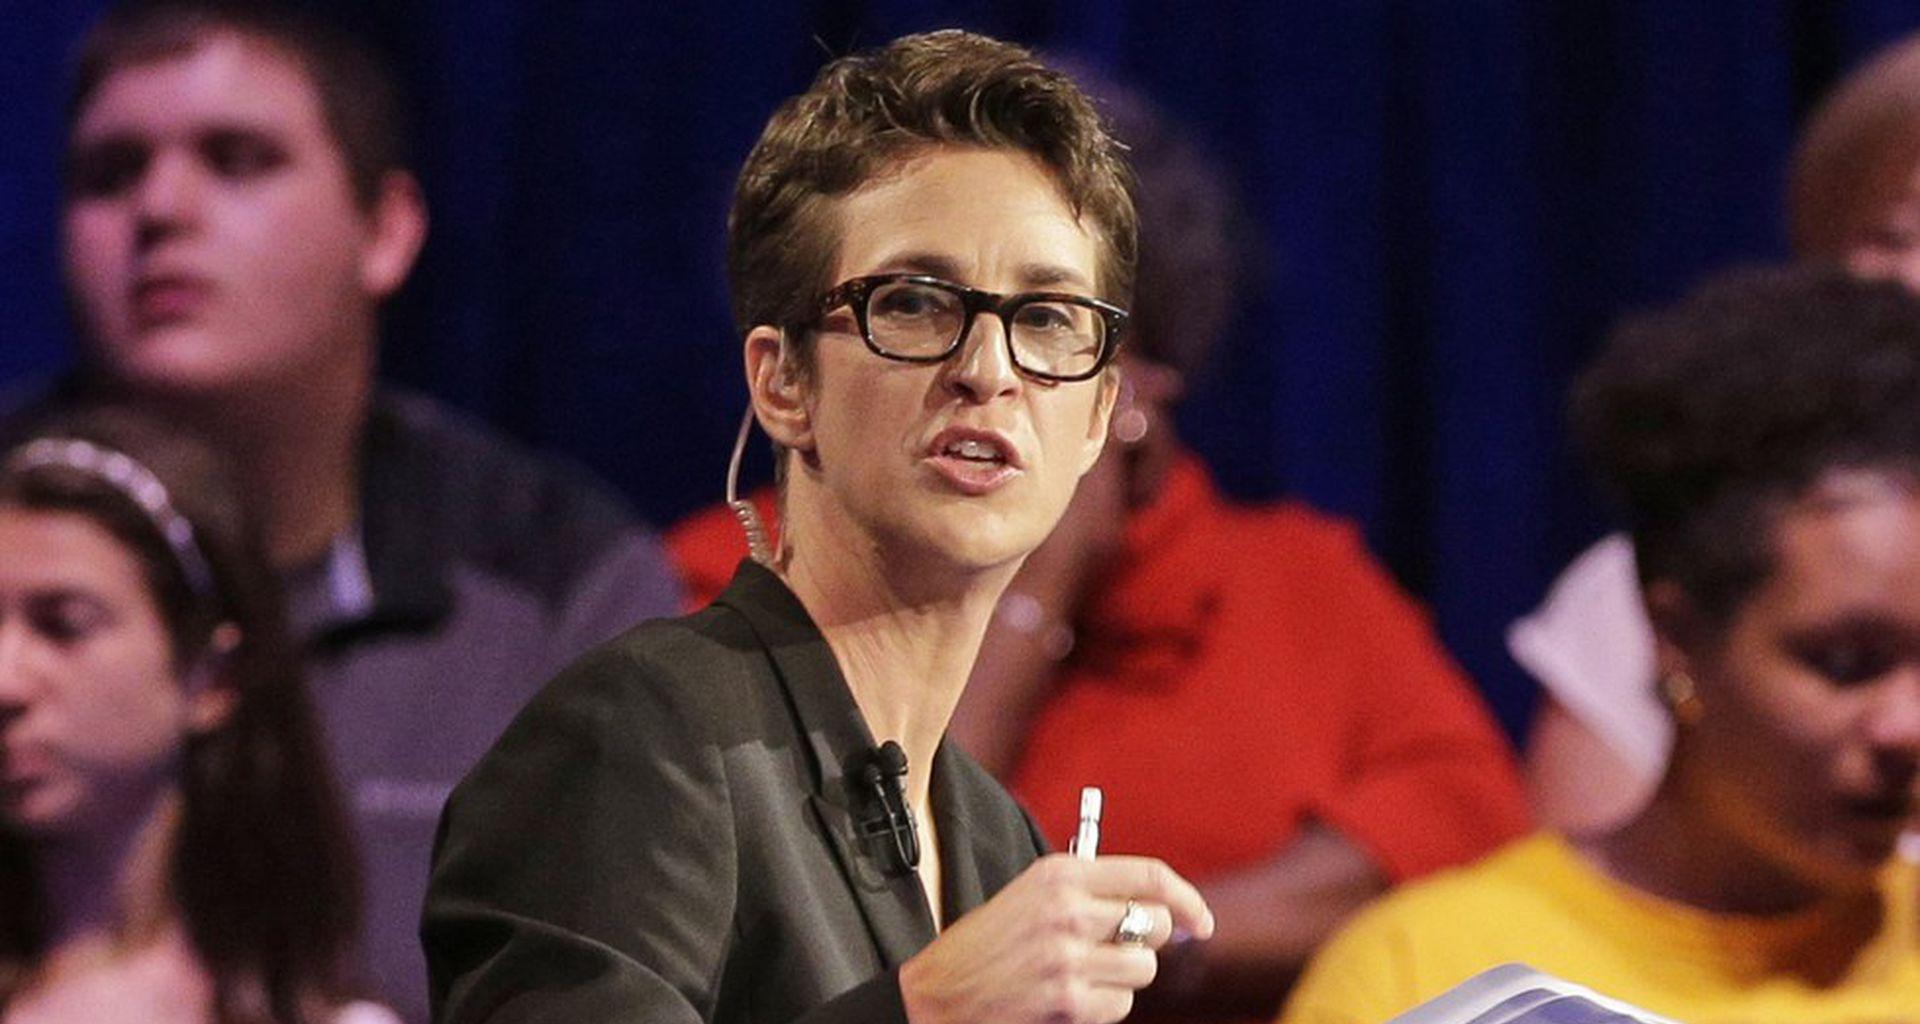 Rachel Maddow Says Her Partner Nearly Died - Delivers Powerful Message About Taking COVID-19 Very Seriously!